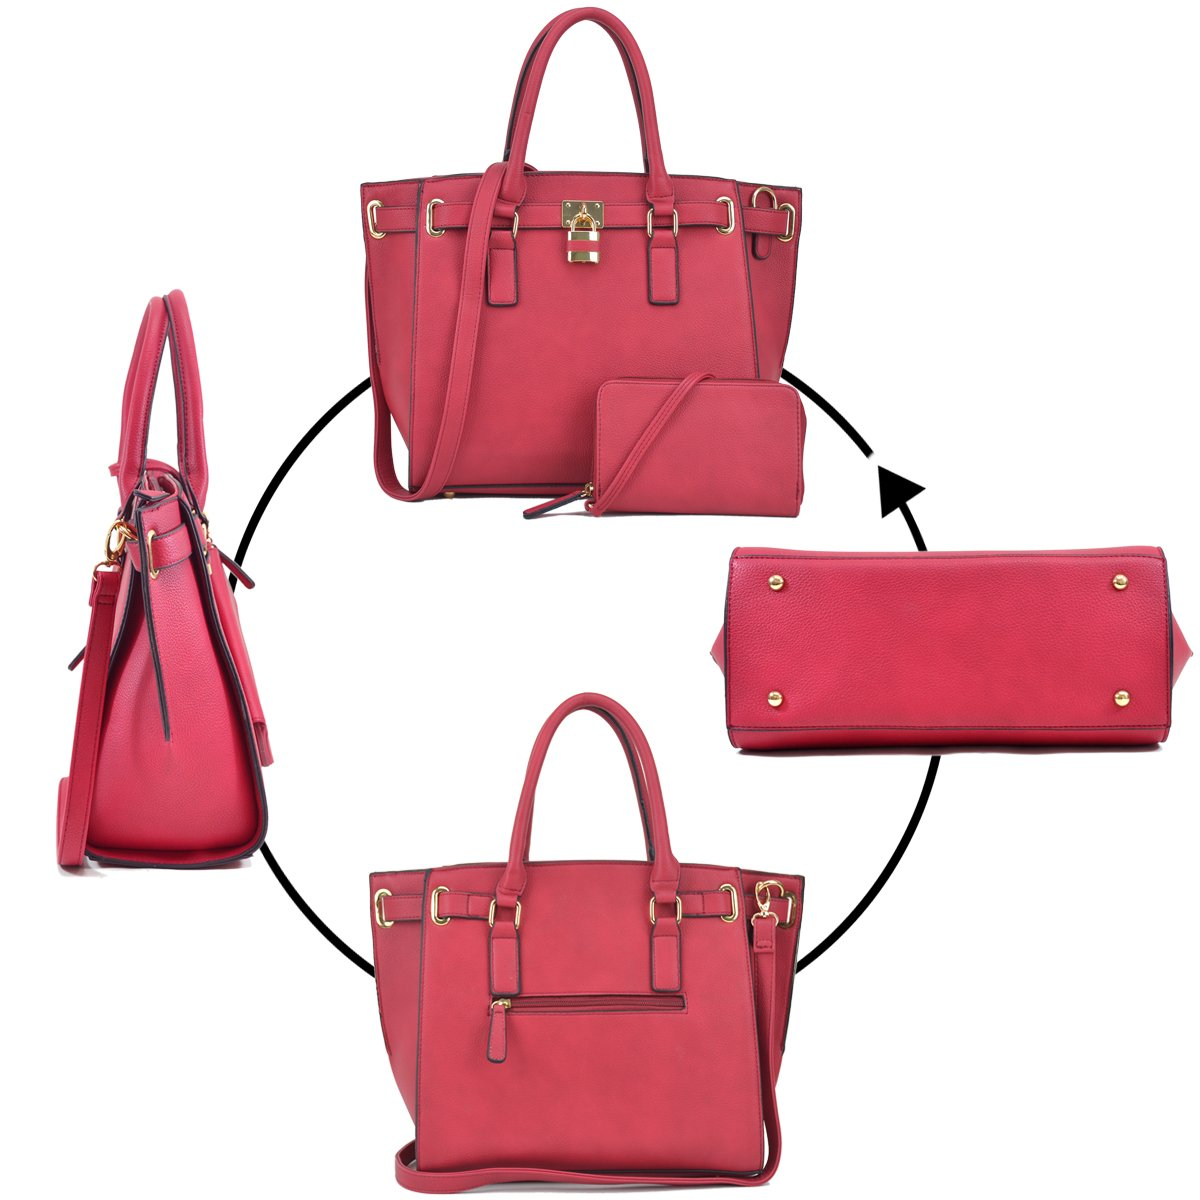 Women Large Vegan Leather Tote Bags Structured Work Bags Shoulder Purses Handbags for Women with Padlock by Dasein (Image #6)